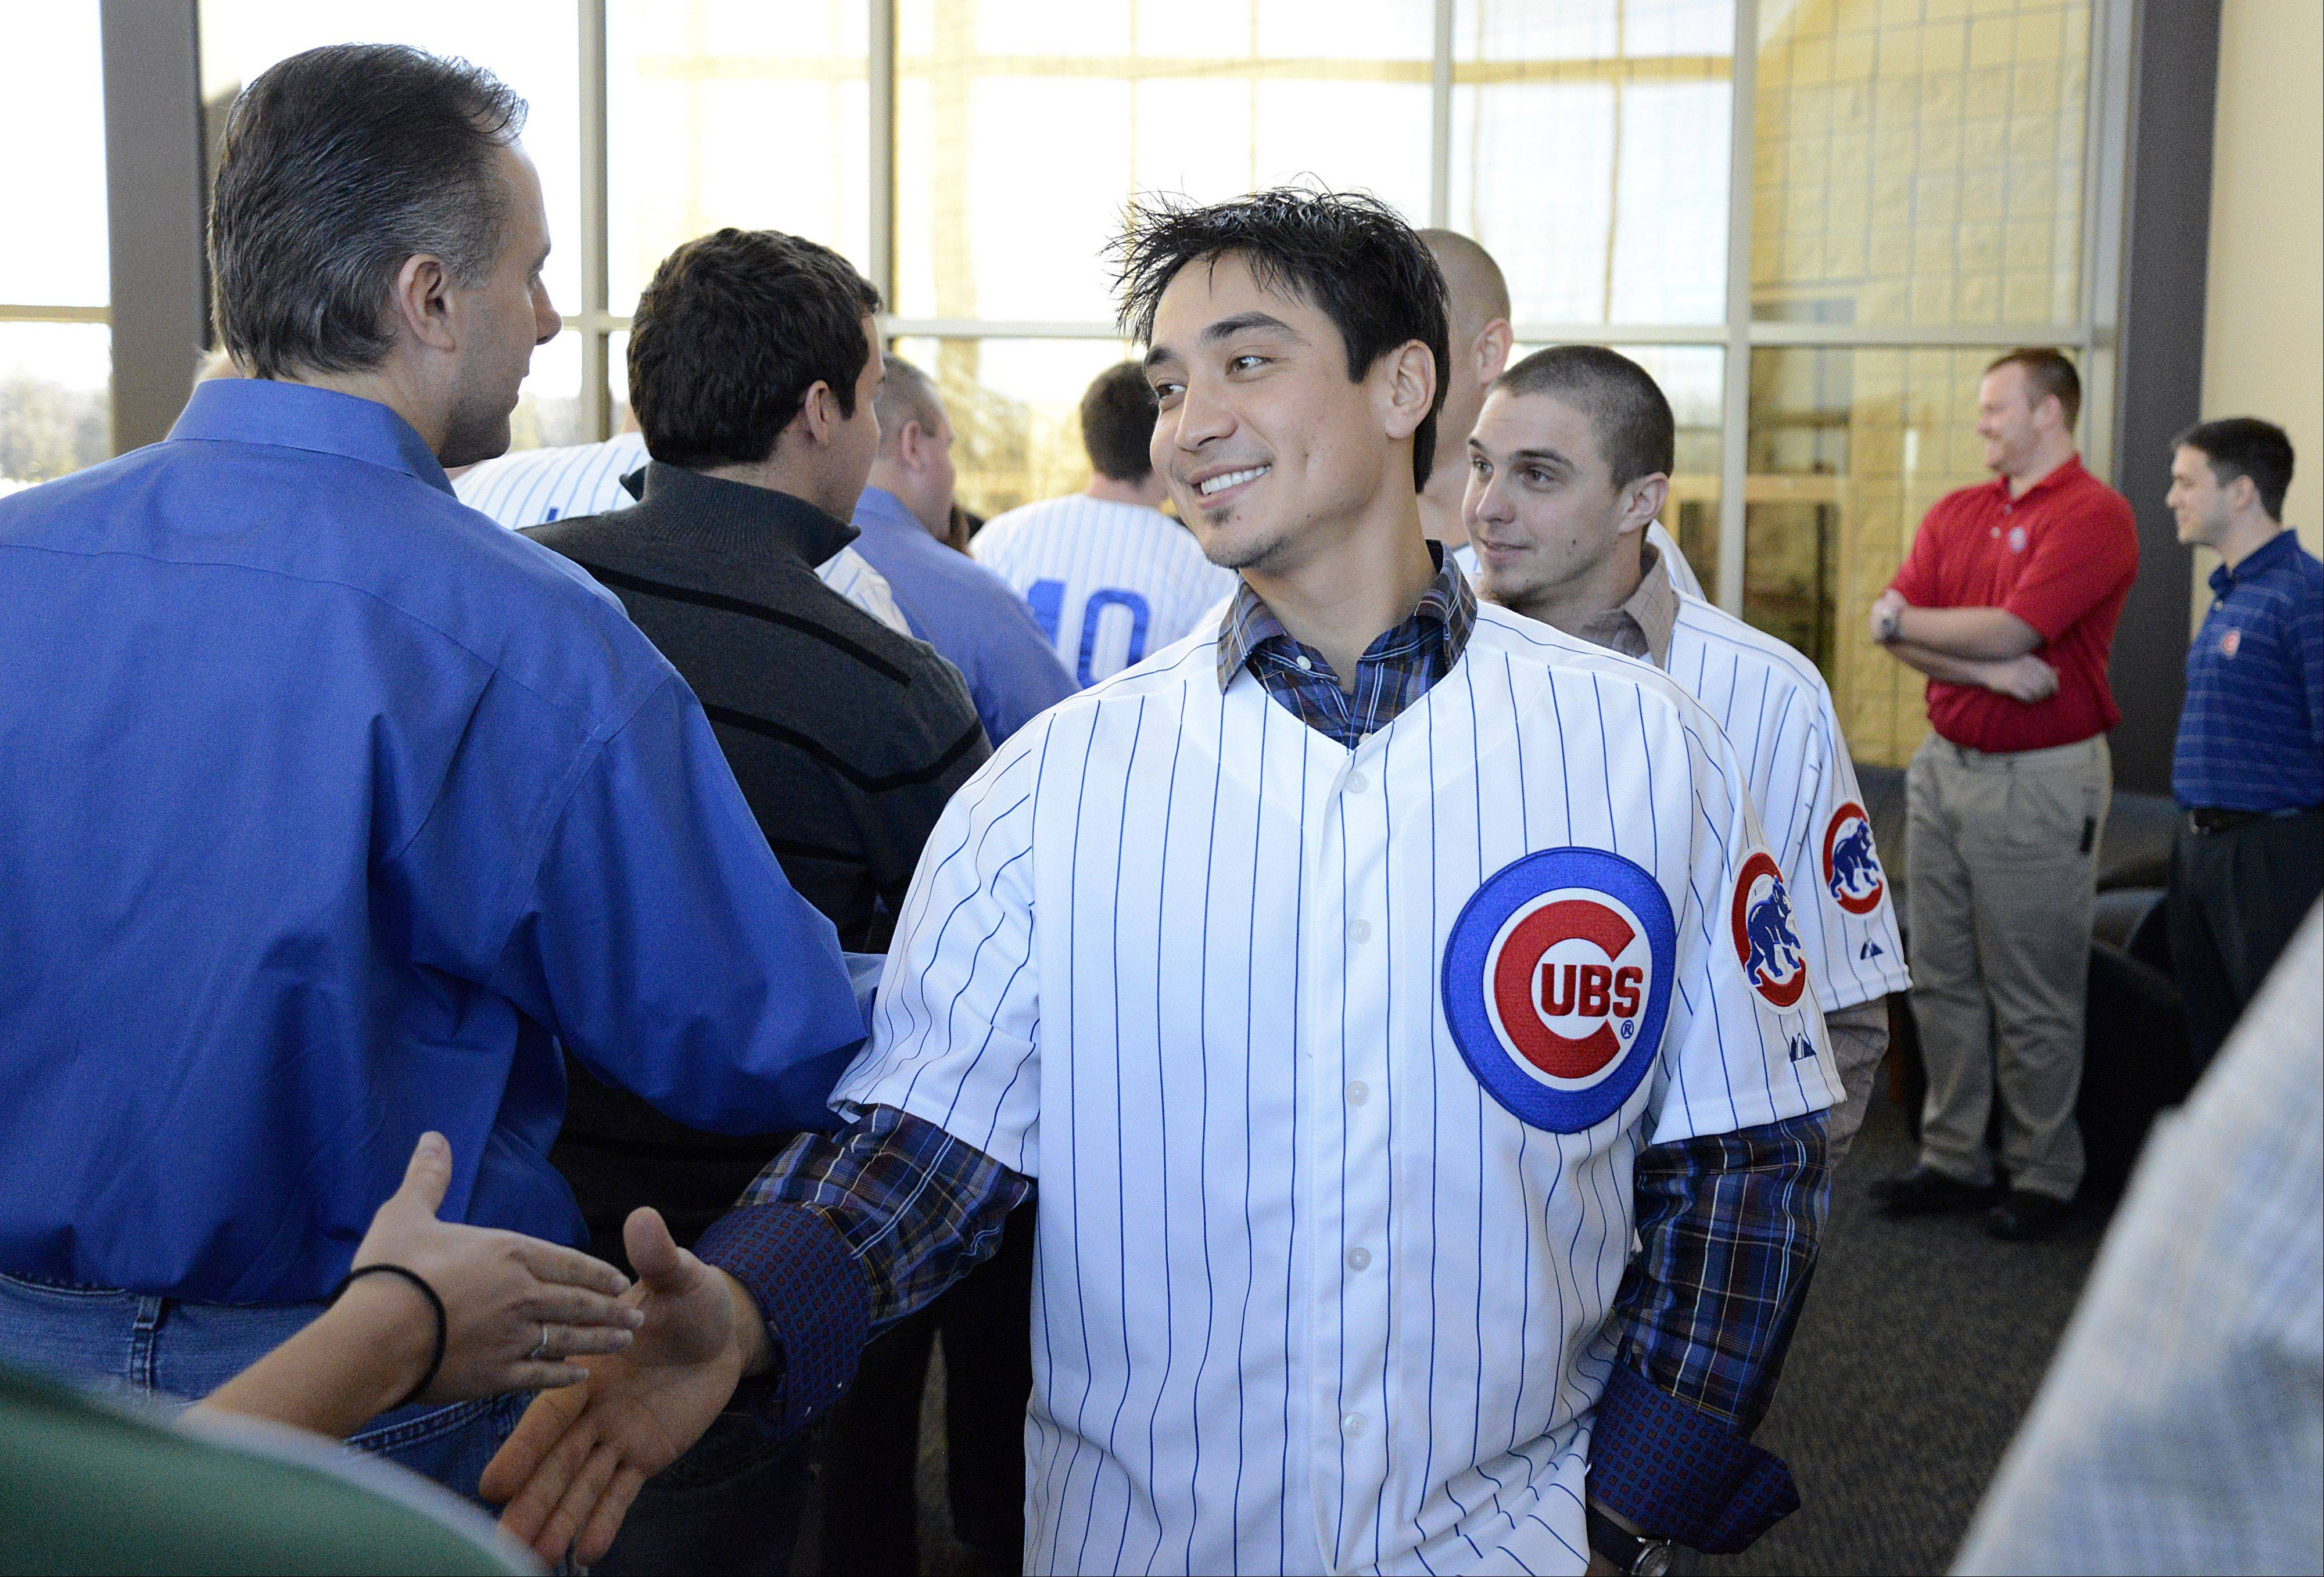 Chicago Cubs second baseman and 2012 Gold Glove winner Darwin Barney, followed by outfielder Tony Campana, meet staff members of the Kane County Cougars during a quick visit at Fifth Third Bank Ballpark in Geneva Jan. 17. Players, coaches and staff of the Cubs On the Move 2013 Caravan Tour came by for about 30 minutes after meeting with children at an Oswego school.